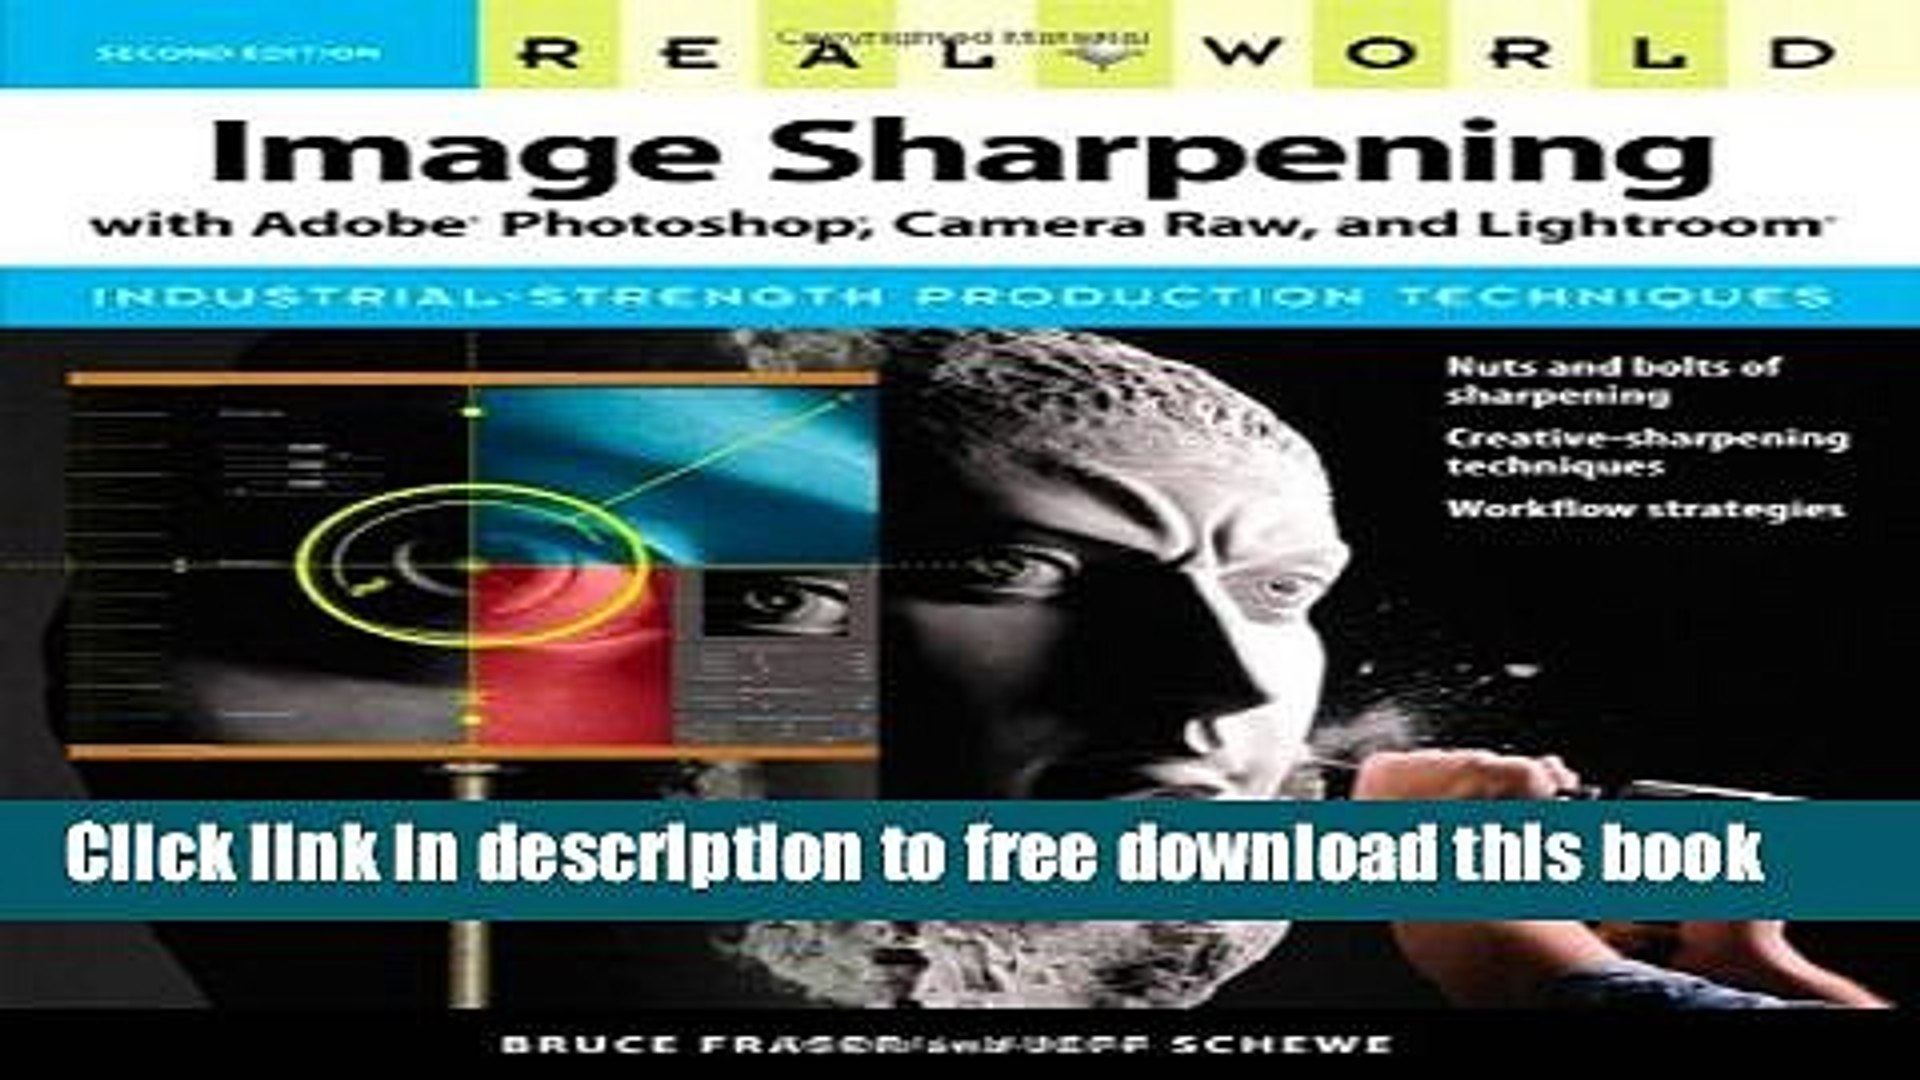 [Download] Real World Image Sharpening with Adobe Photoshop, Camera Raw,  and Lightroom (2nd